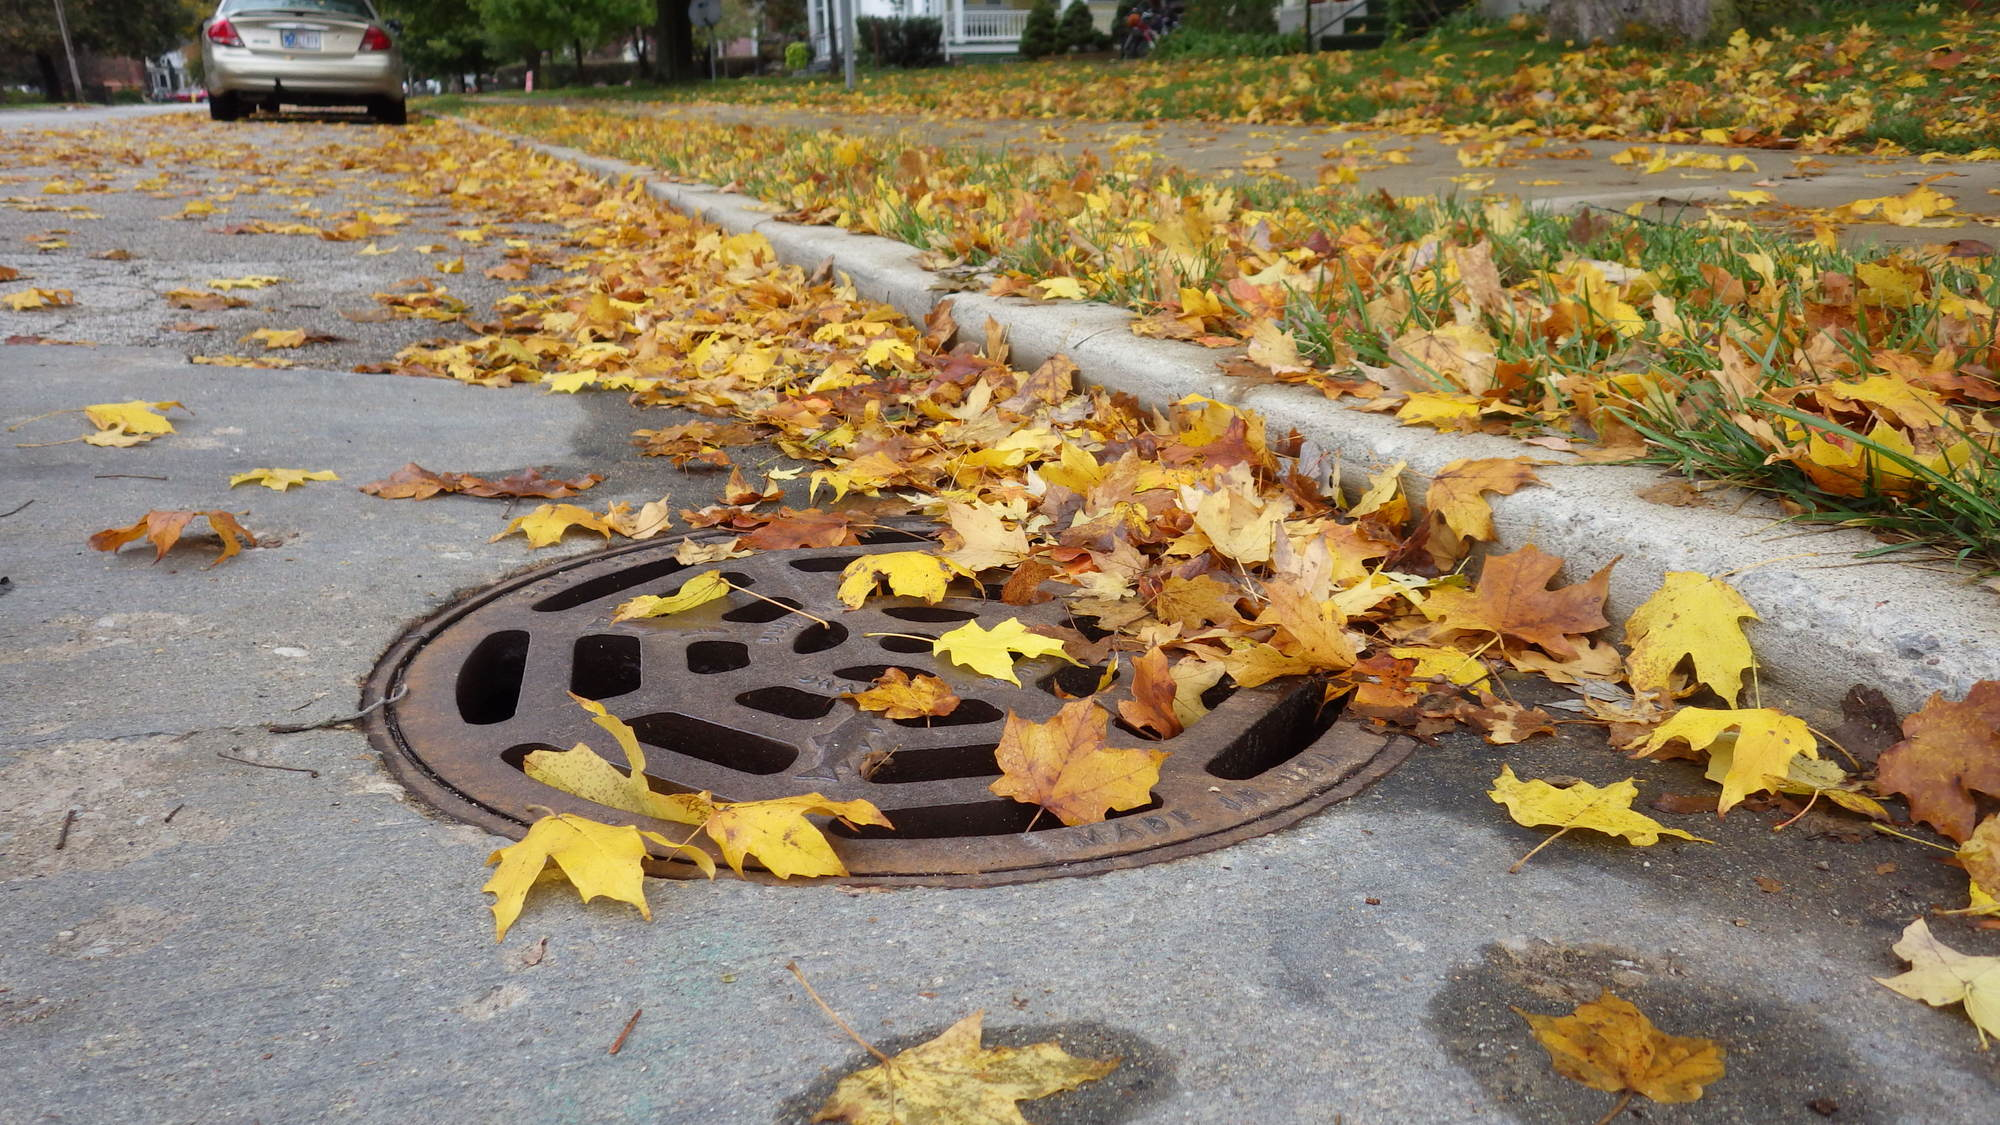 Leaves along the road and on a storm drain.